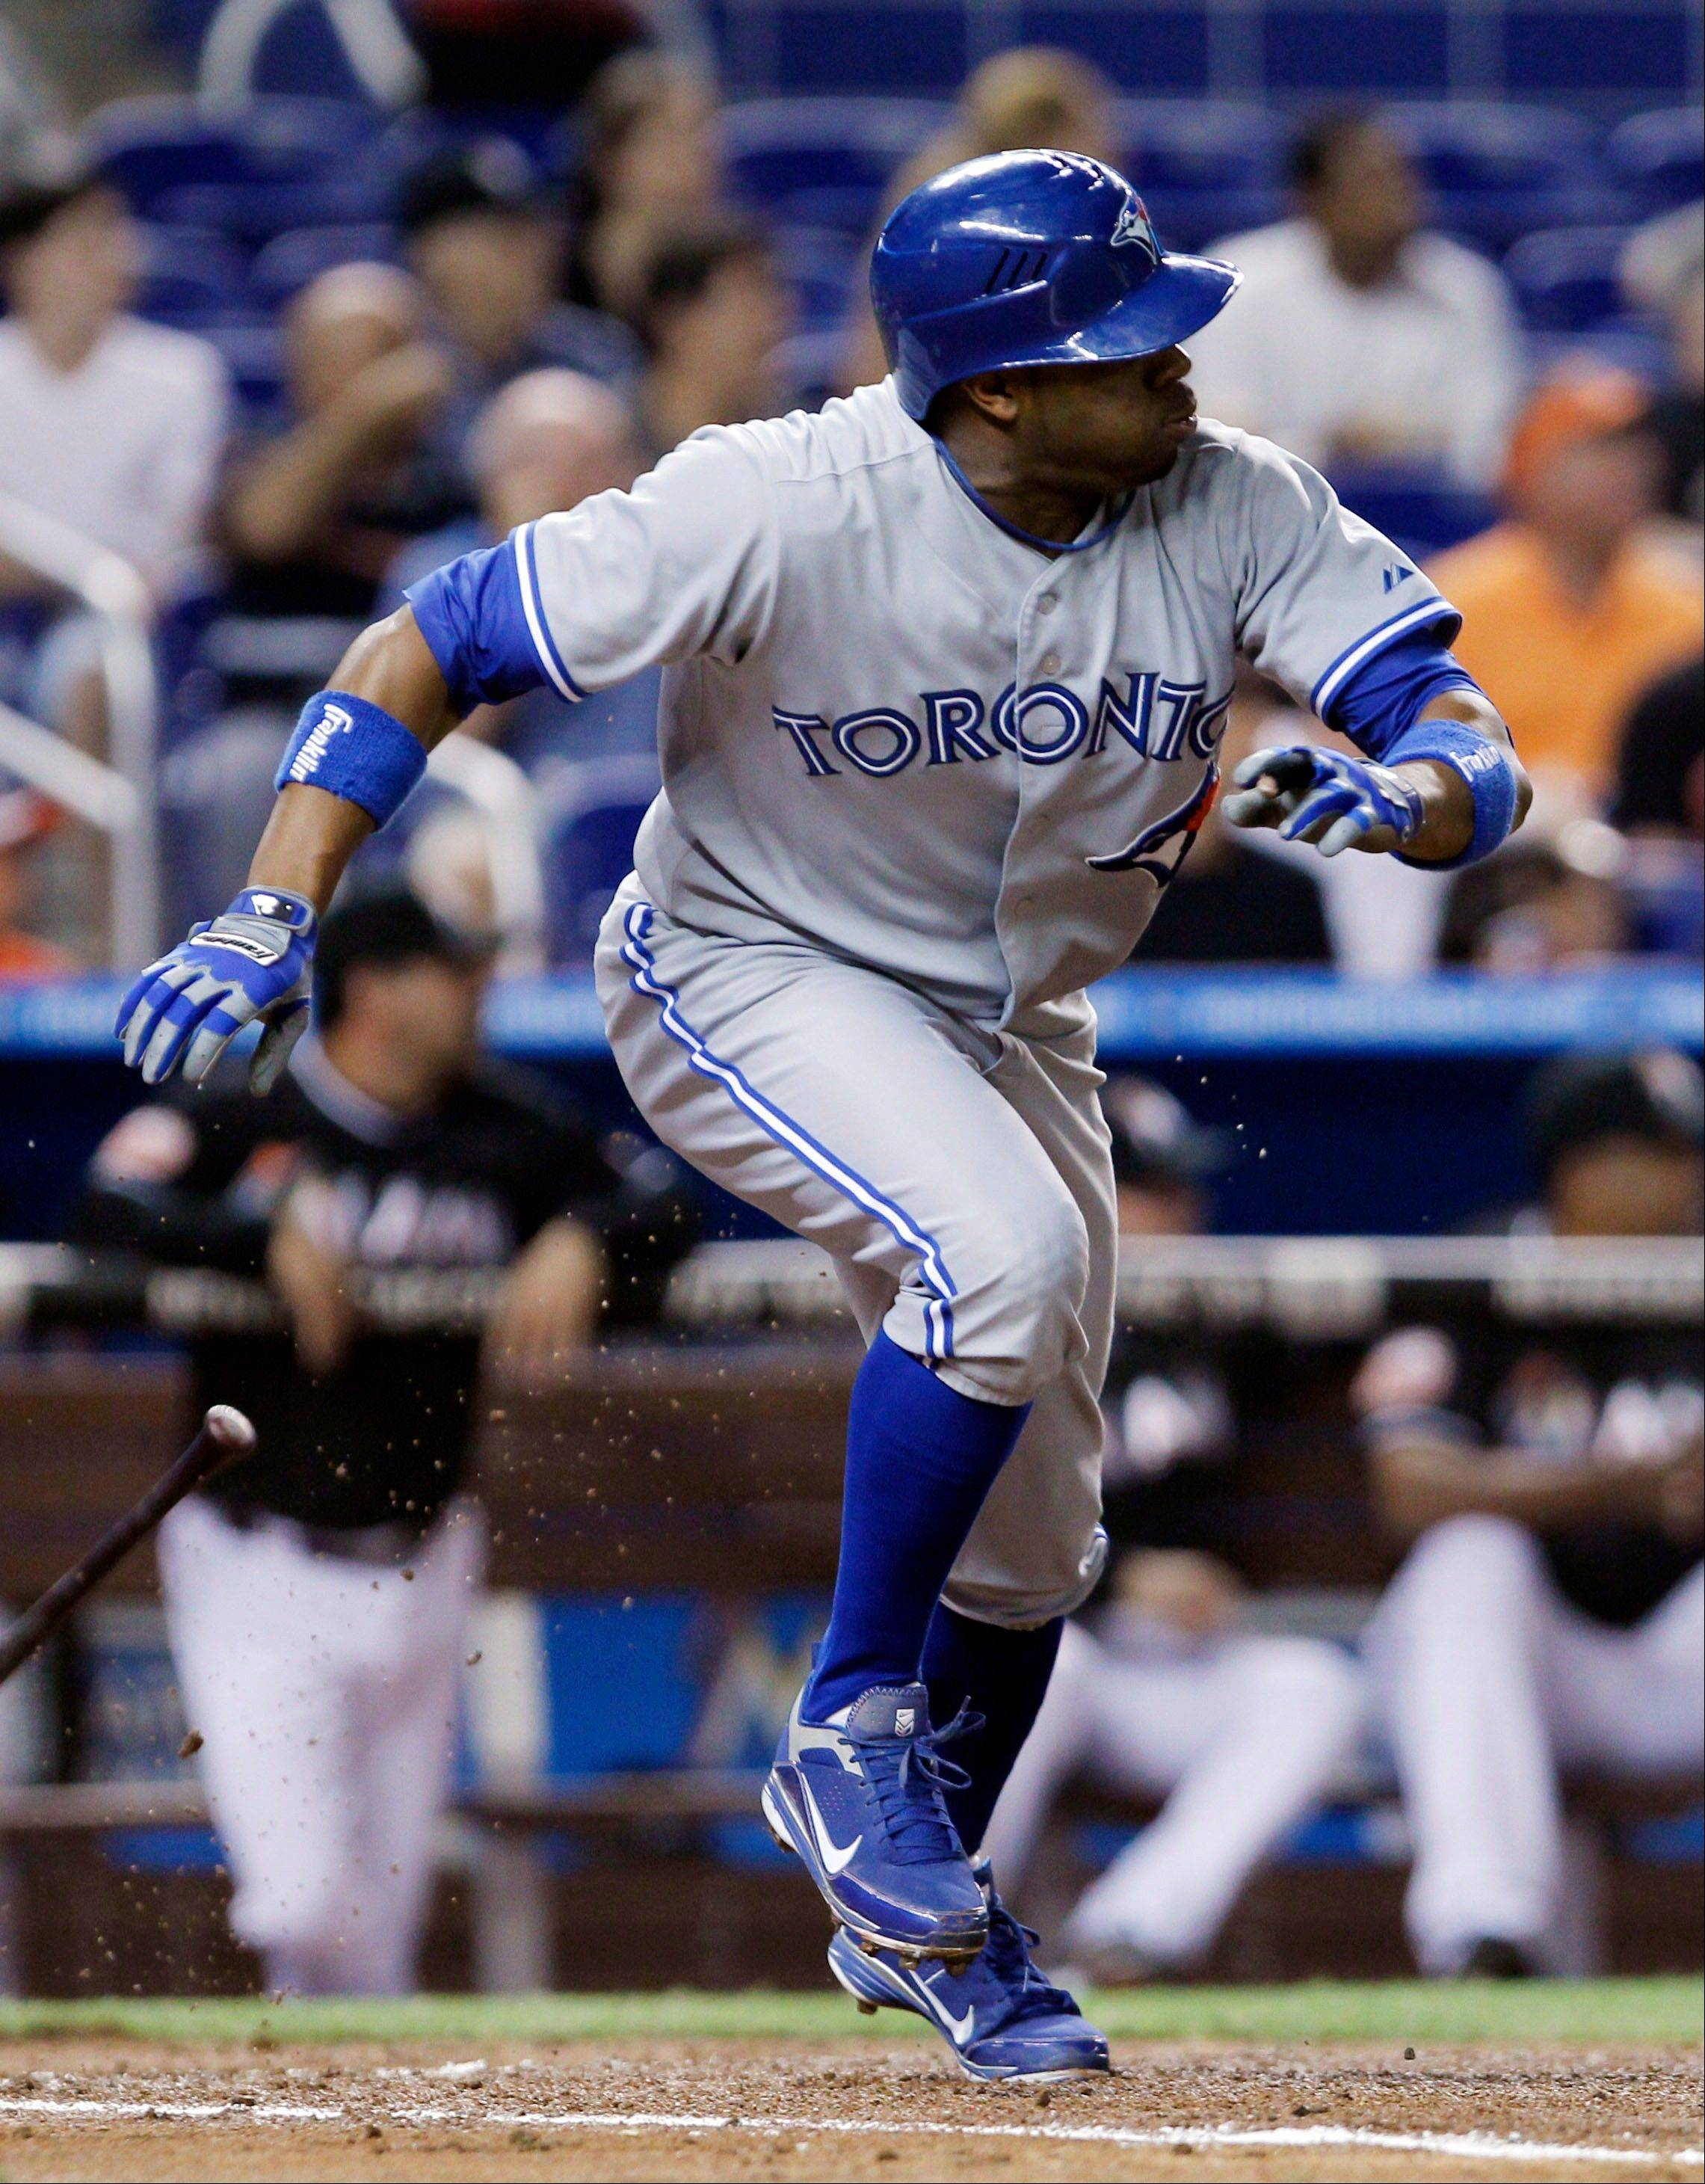 The Toronto Blue Jays' Rajai Davis leaves the batter's box on a second-inning double Friday against the Miami Marlins in Miami.